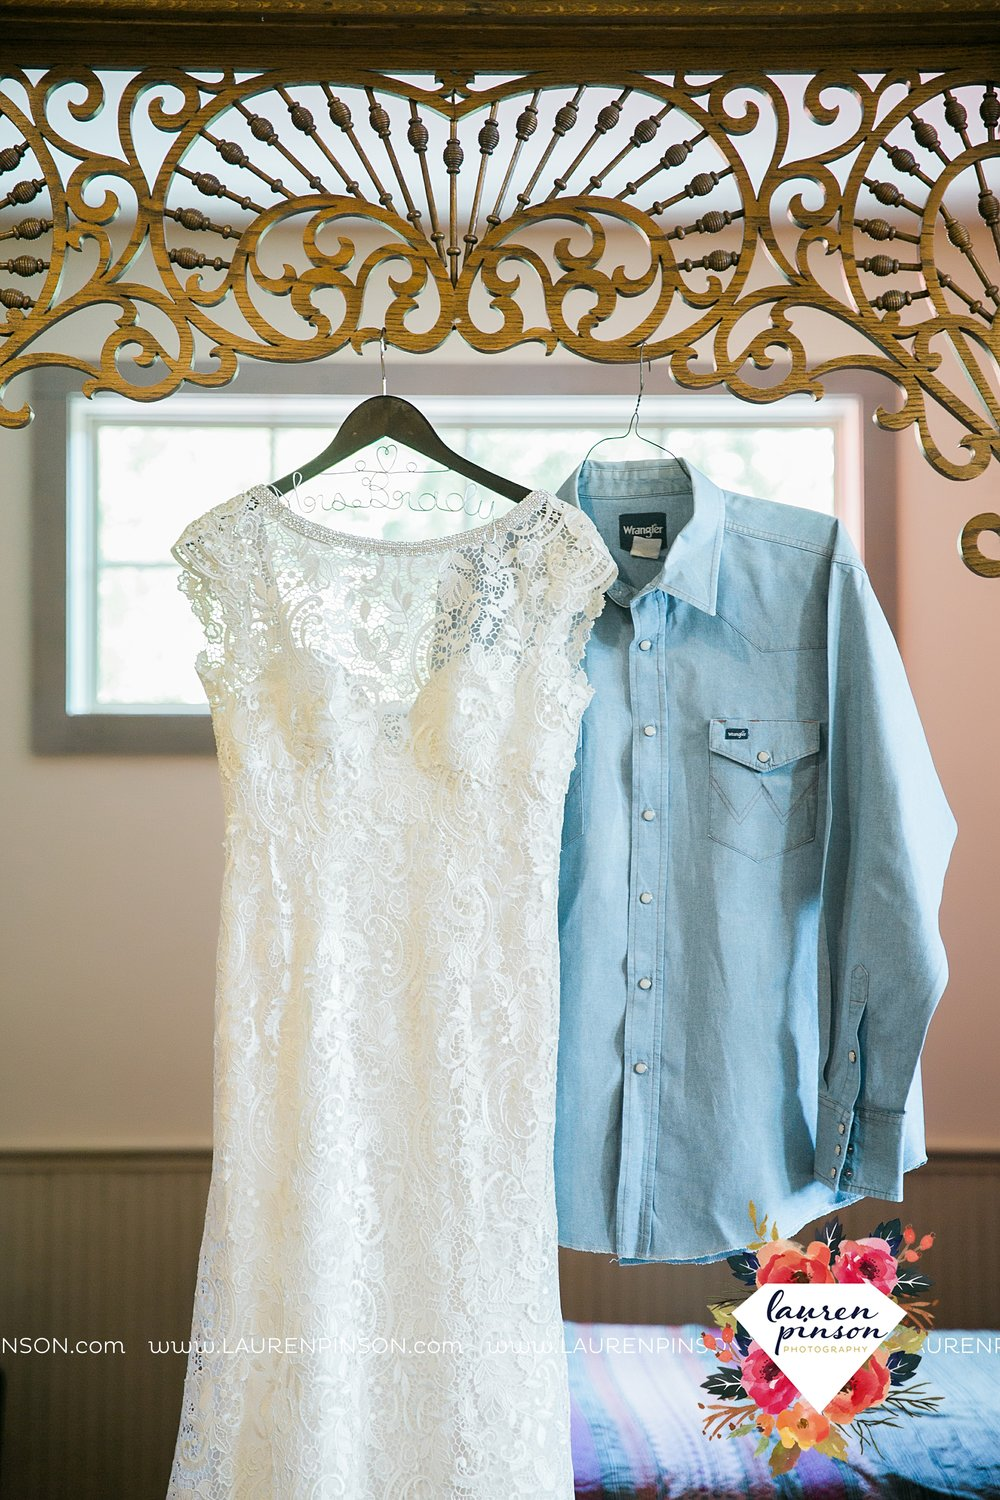 springtown-texas-wedding-at-oak-knoll-ranch-dfw-and-wichita-falls-wedding-photography-lauren-pinson_3508.jpg